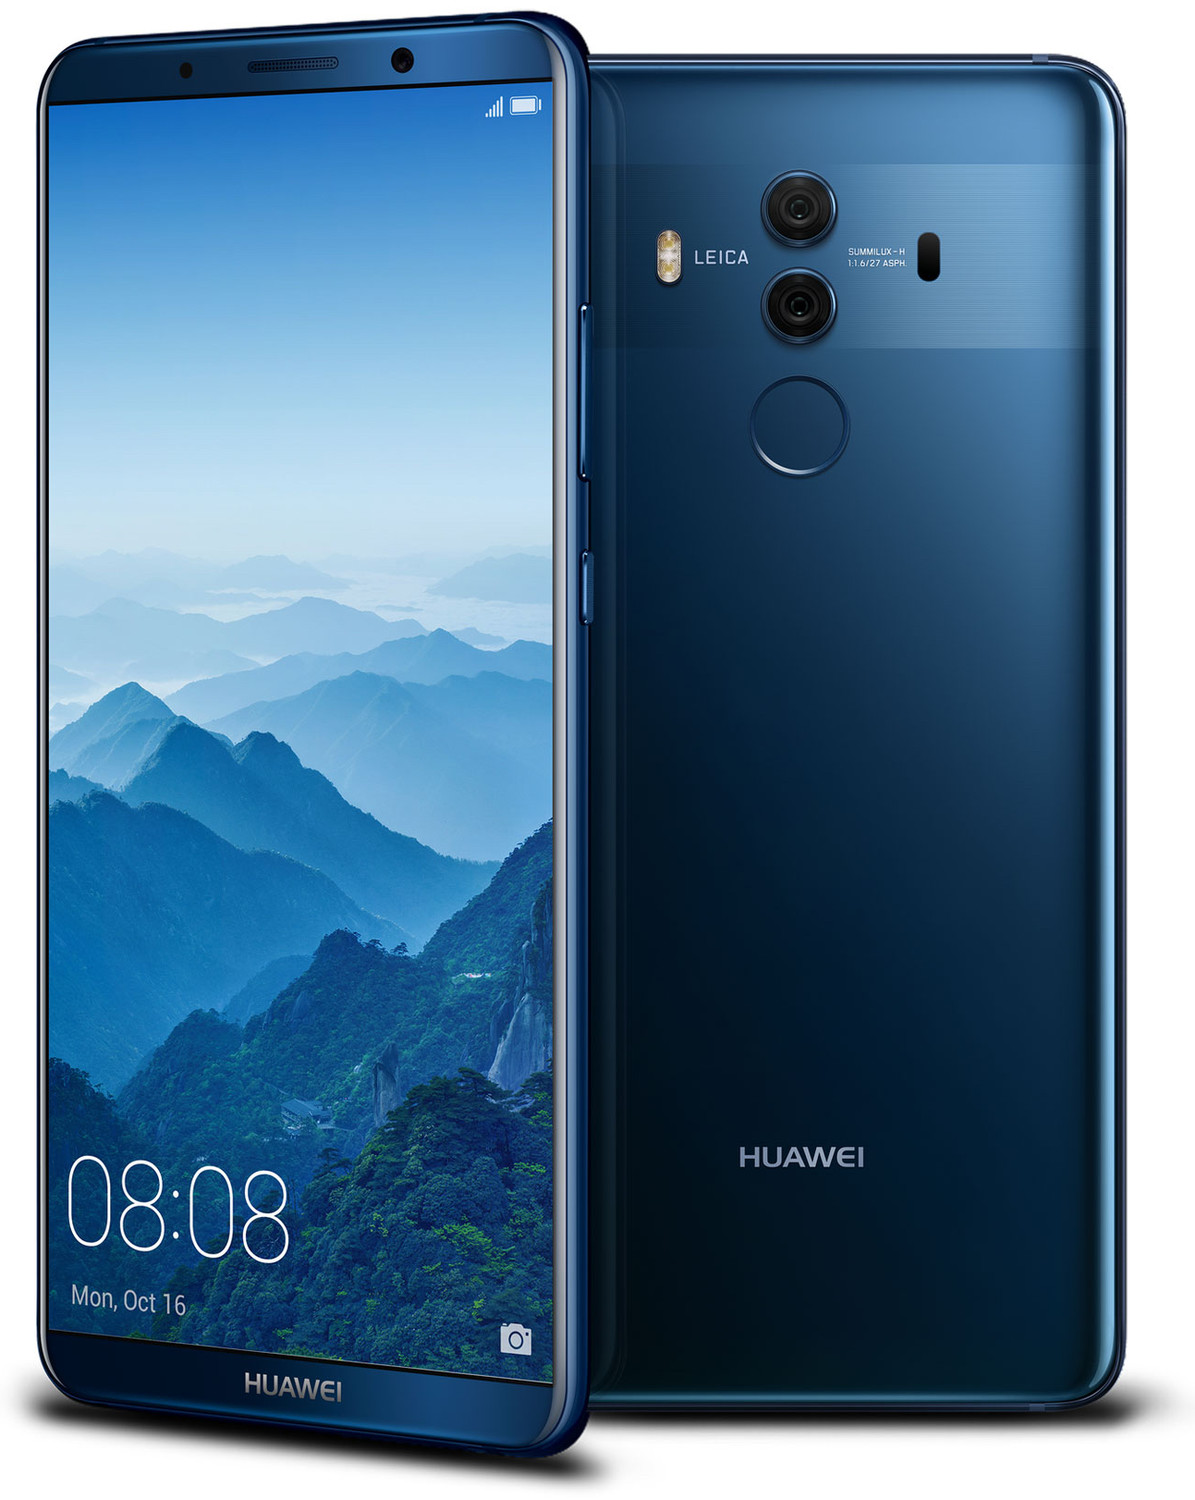 huawei mate 10 pro 64gb specs and price phonegg. Black Bedroom Furniture Sets. Home Design Ideas